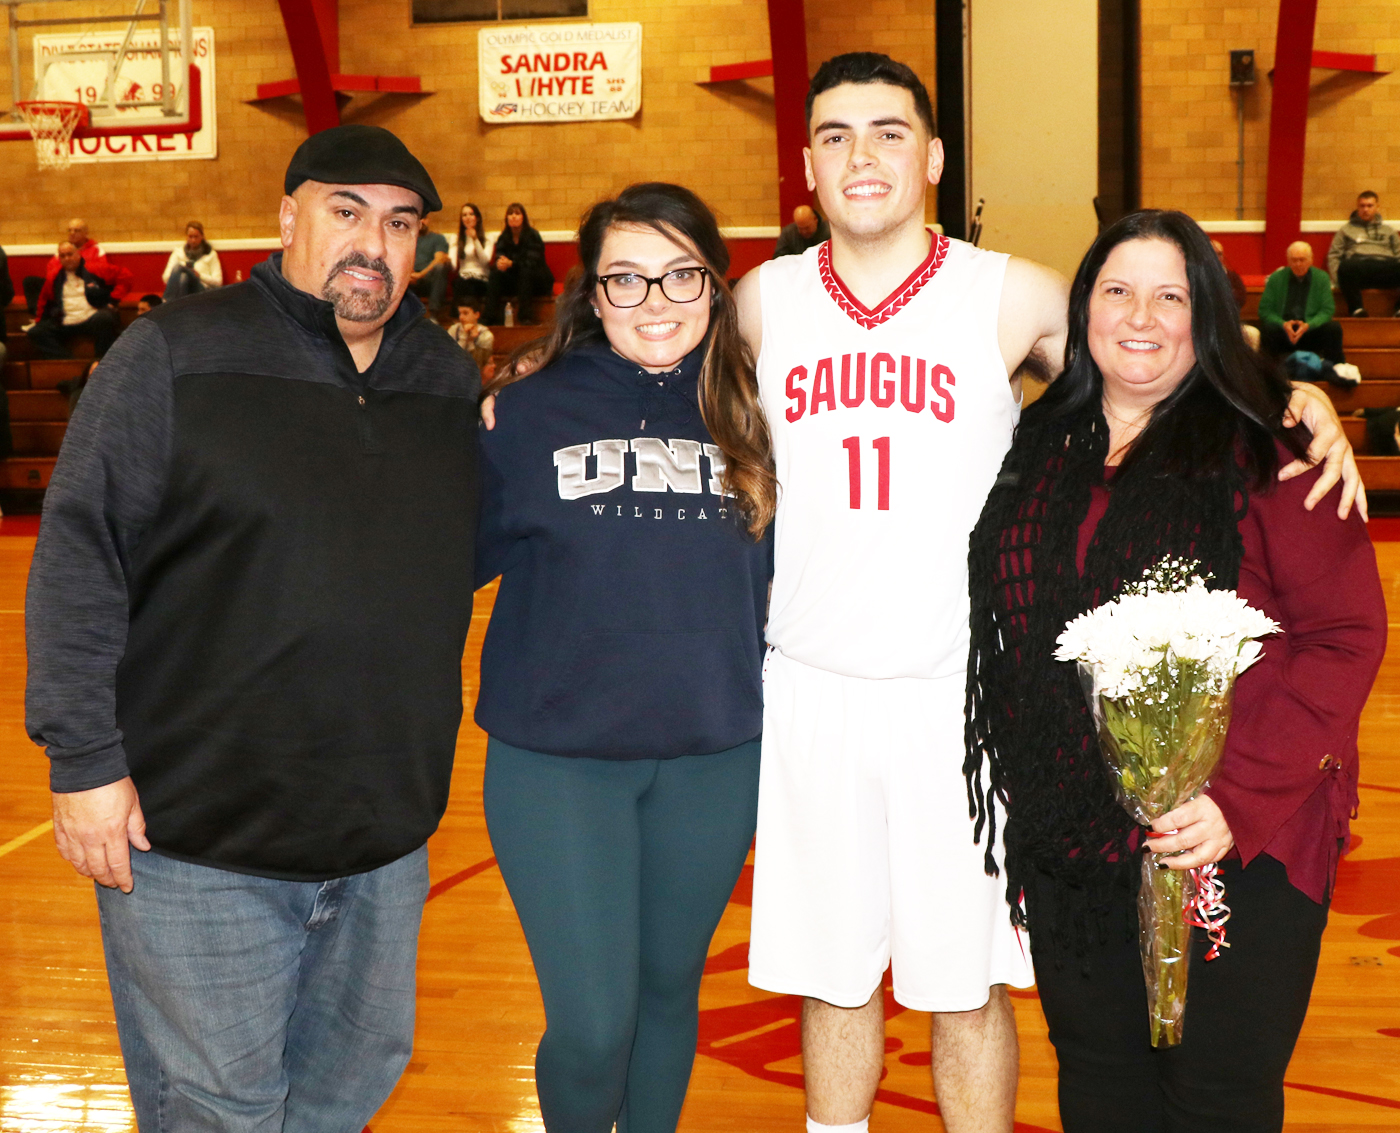 #11 Paul Stamatopoulos with his parents, Diana and Paul and Jenna.